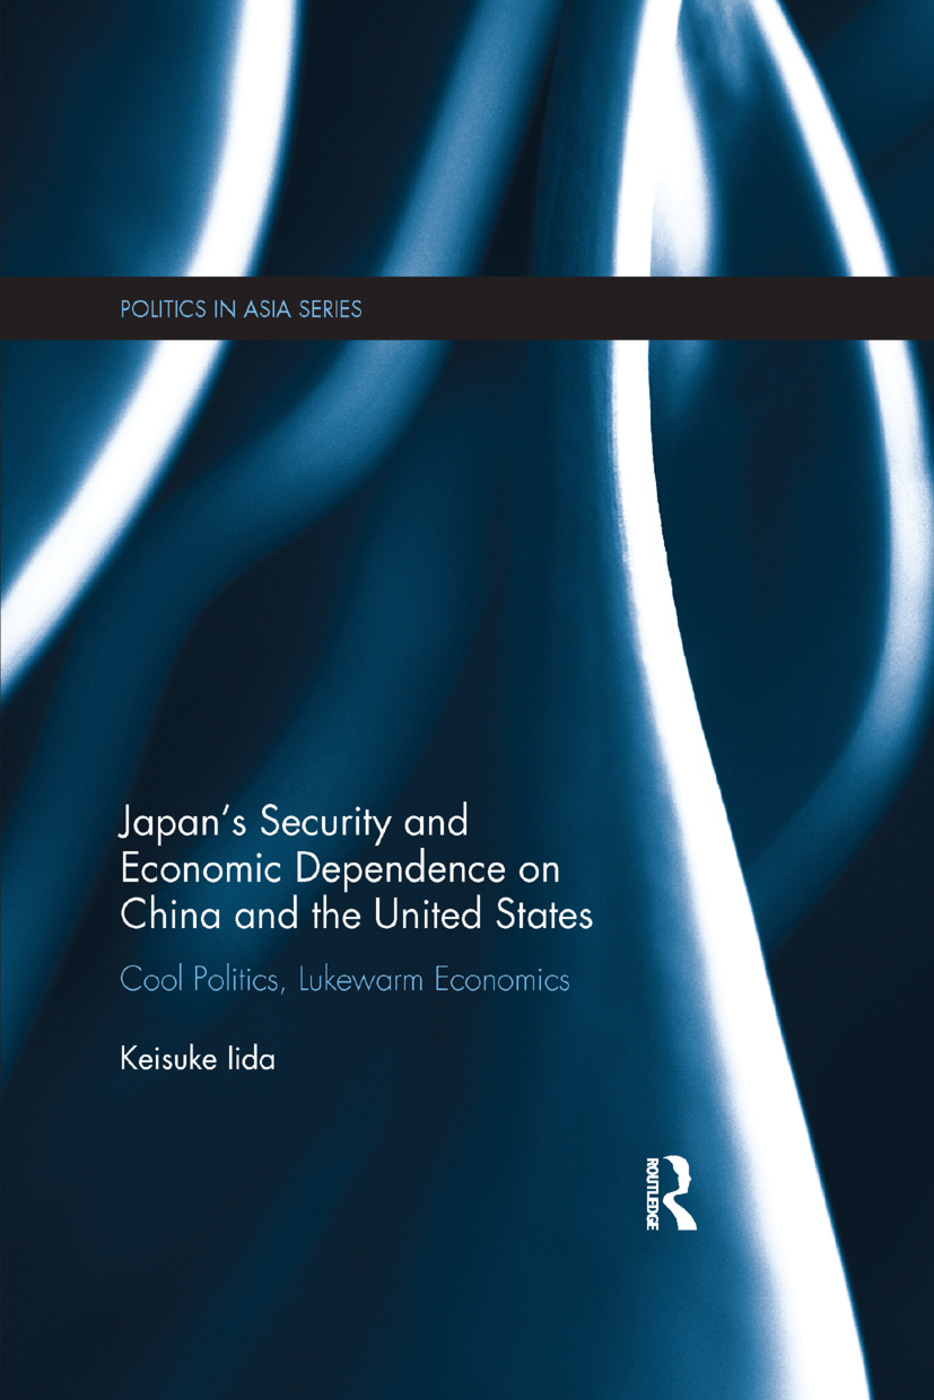 Japan's Security and Economic Dependence on China and the United States: Cool Politics, Lukewarm Economics, 1st Edition (Paperback) book cover